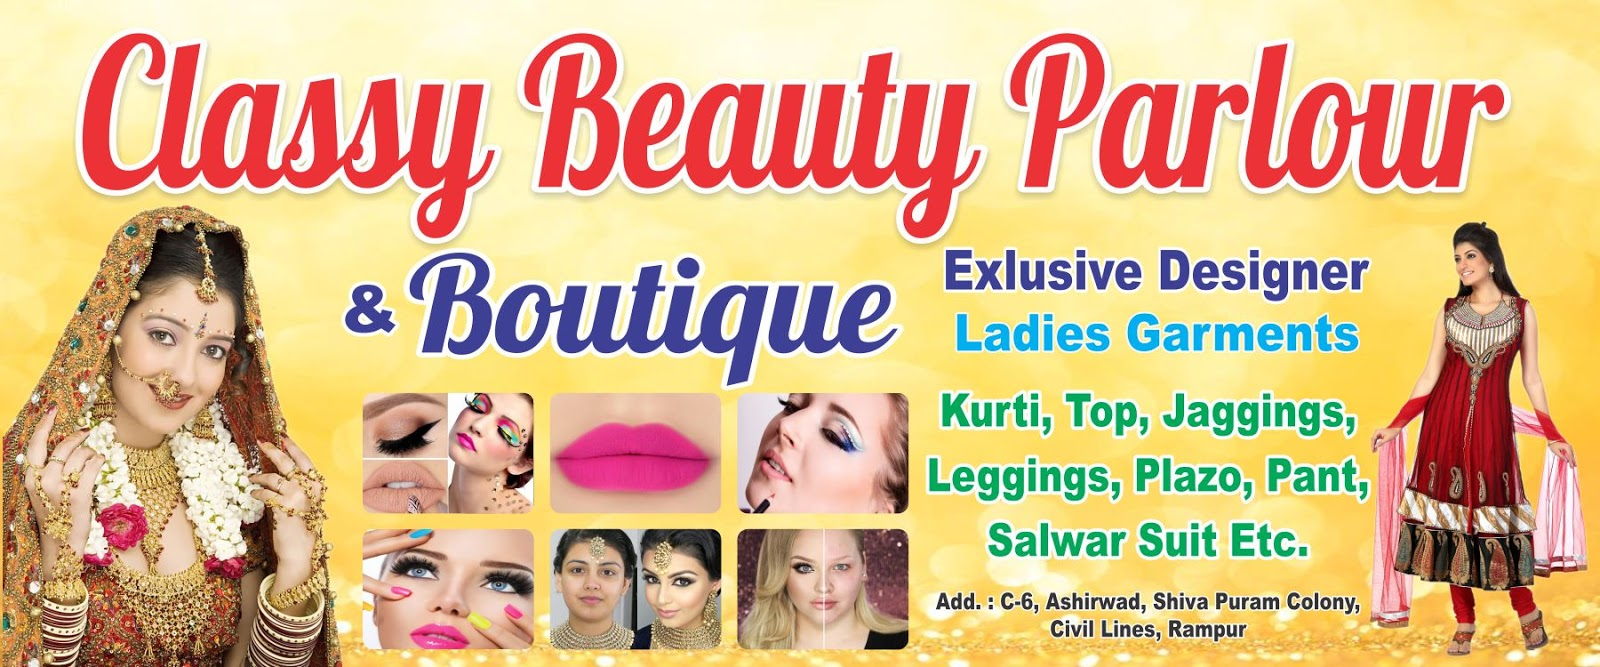 beauty parlour flex design  Ladies Beauty Parlour Flex Banner Designs Free CDR Download | Beauty ...